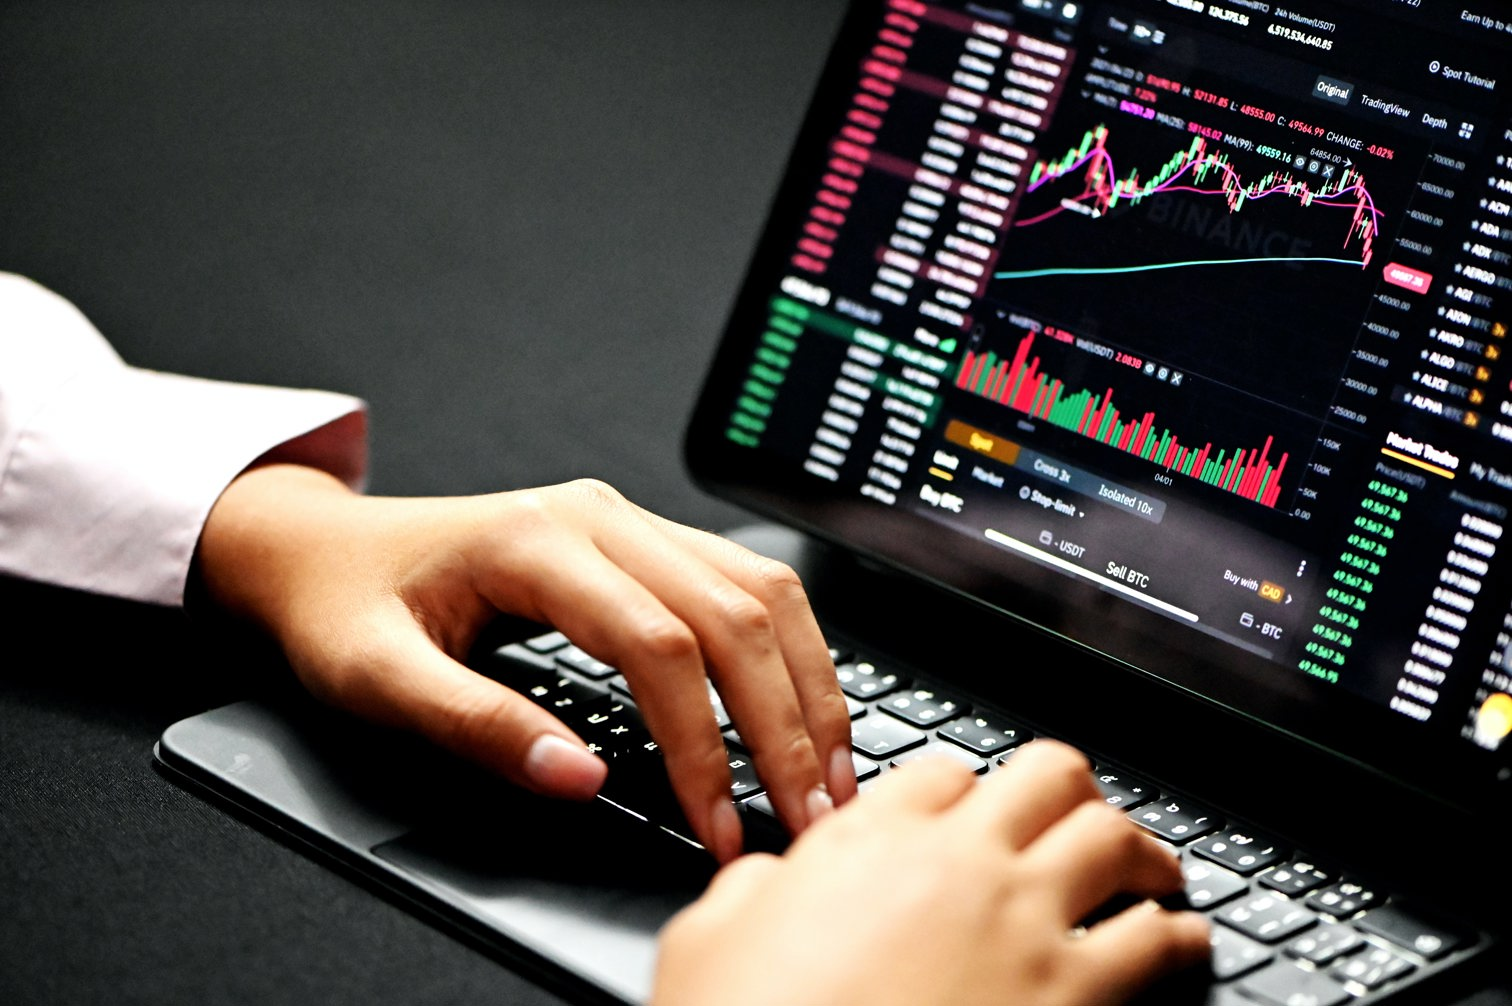 Stock trading, stock price chart, stock chart, options trader, investor